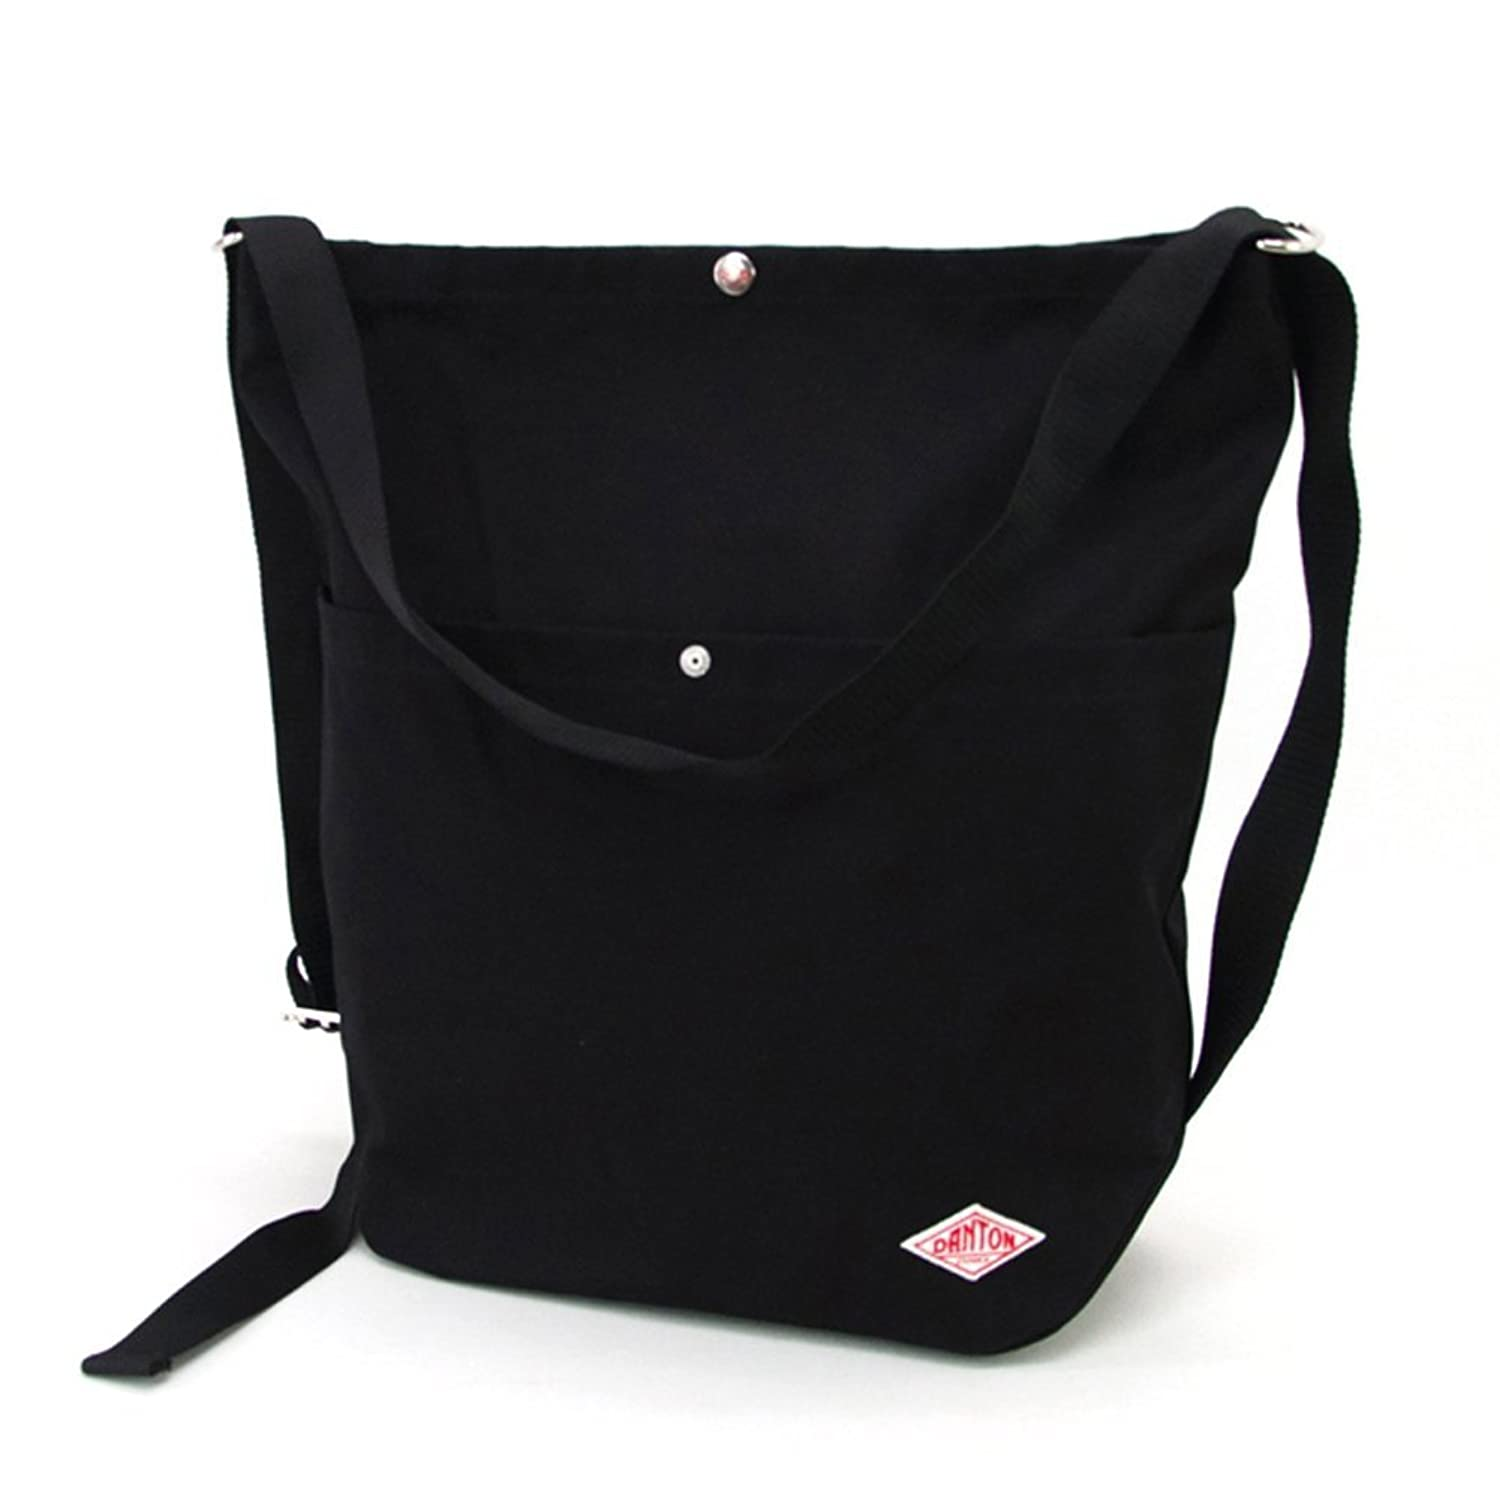 DANTON ダントン COTTON CANVAS 2WAY UTILITY BAG[JD-7092SCV] B07675W7RN  ブラック